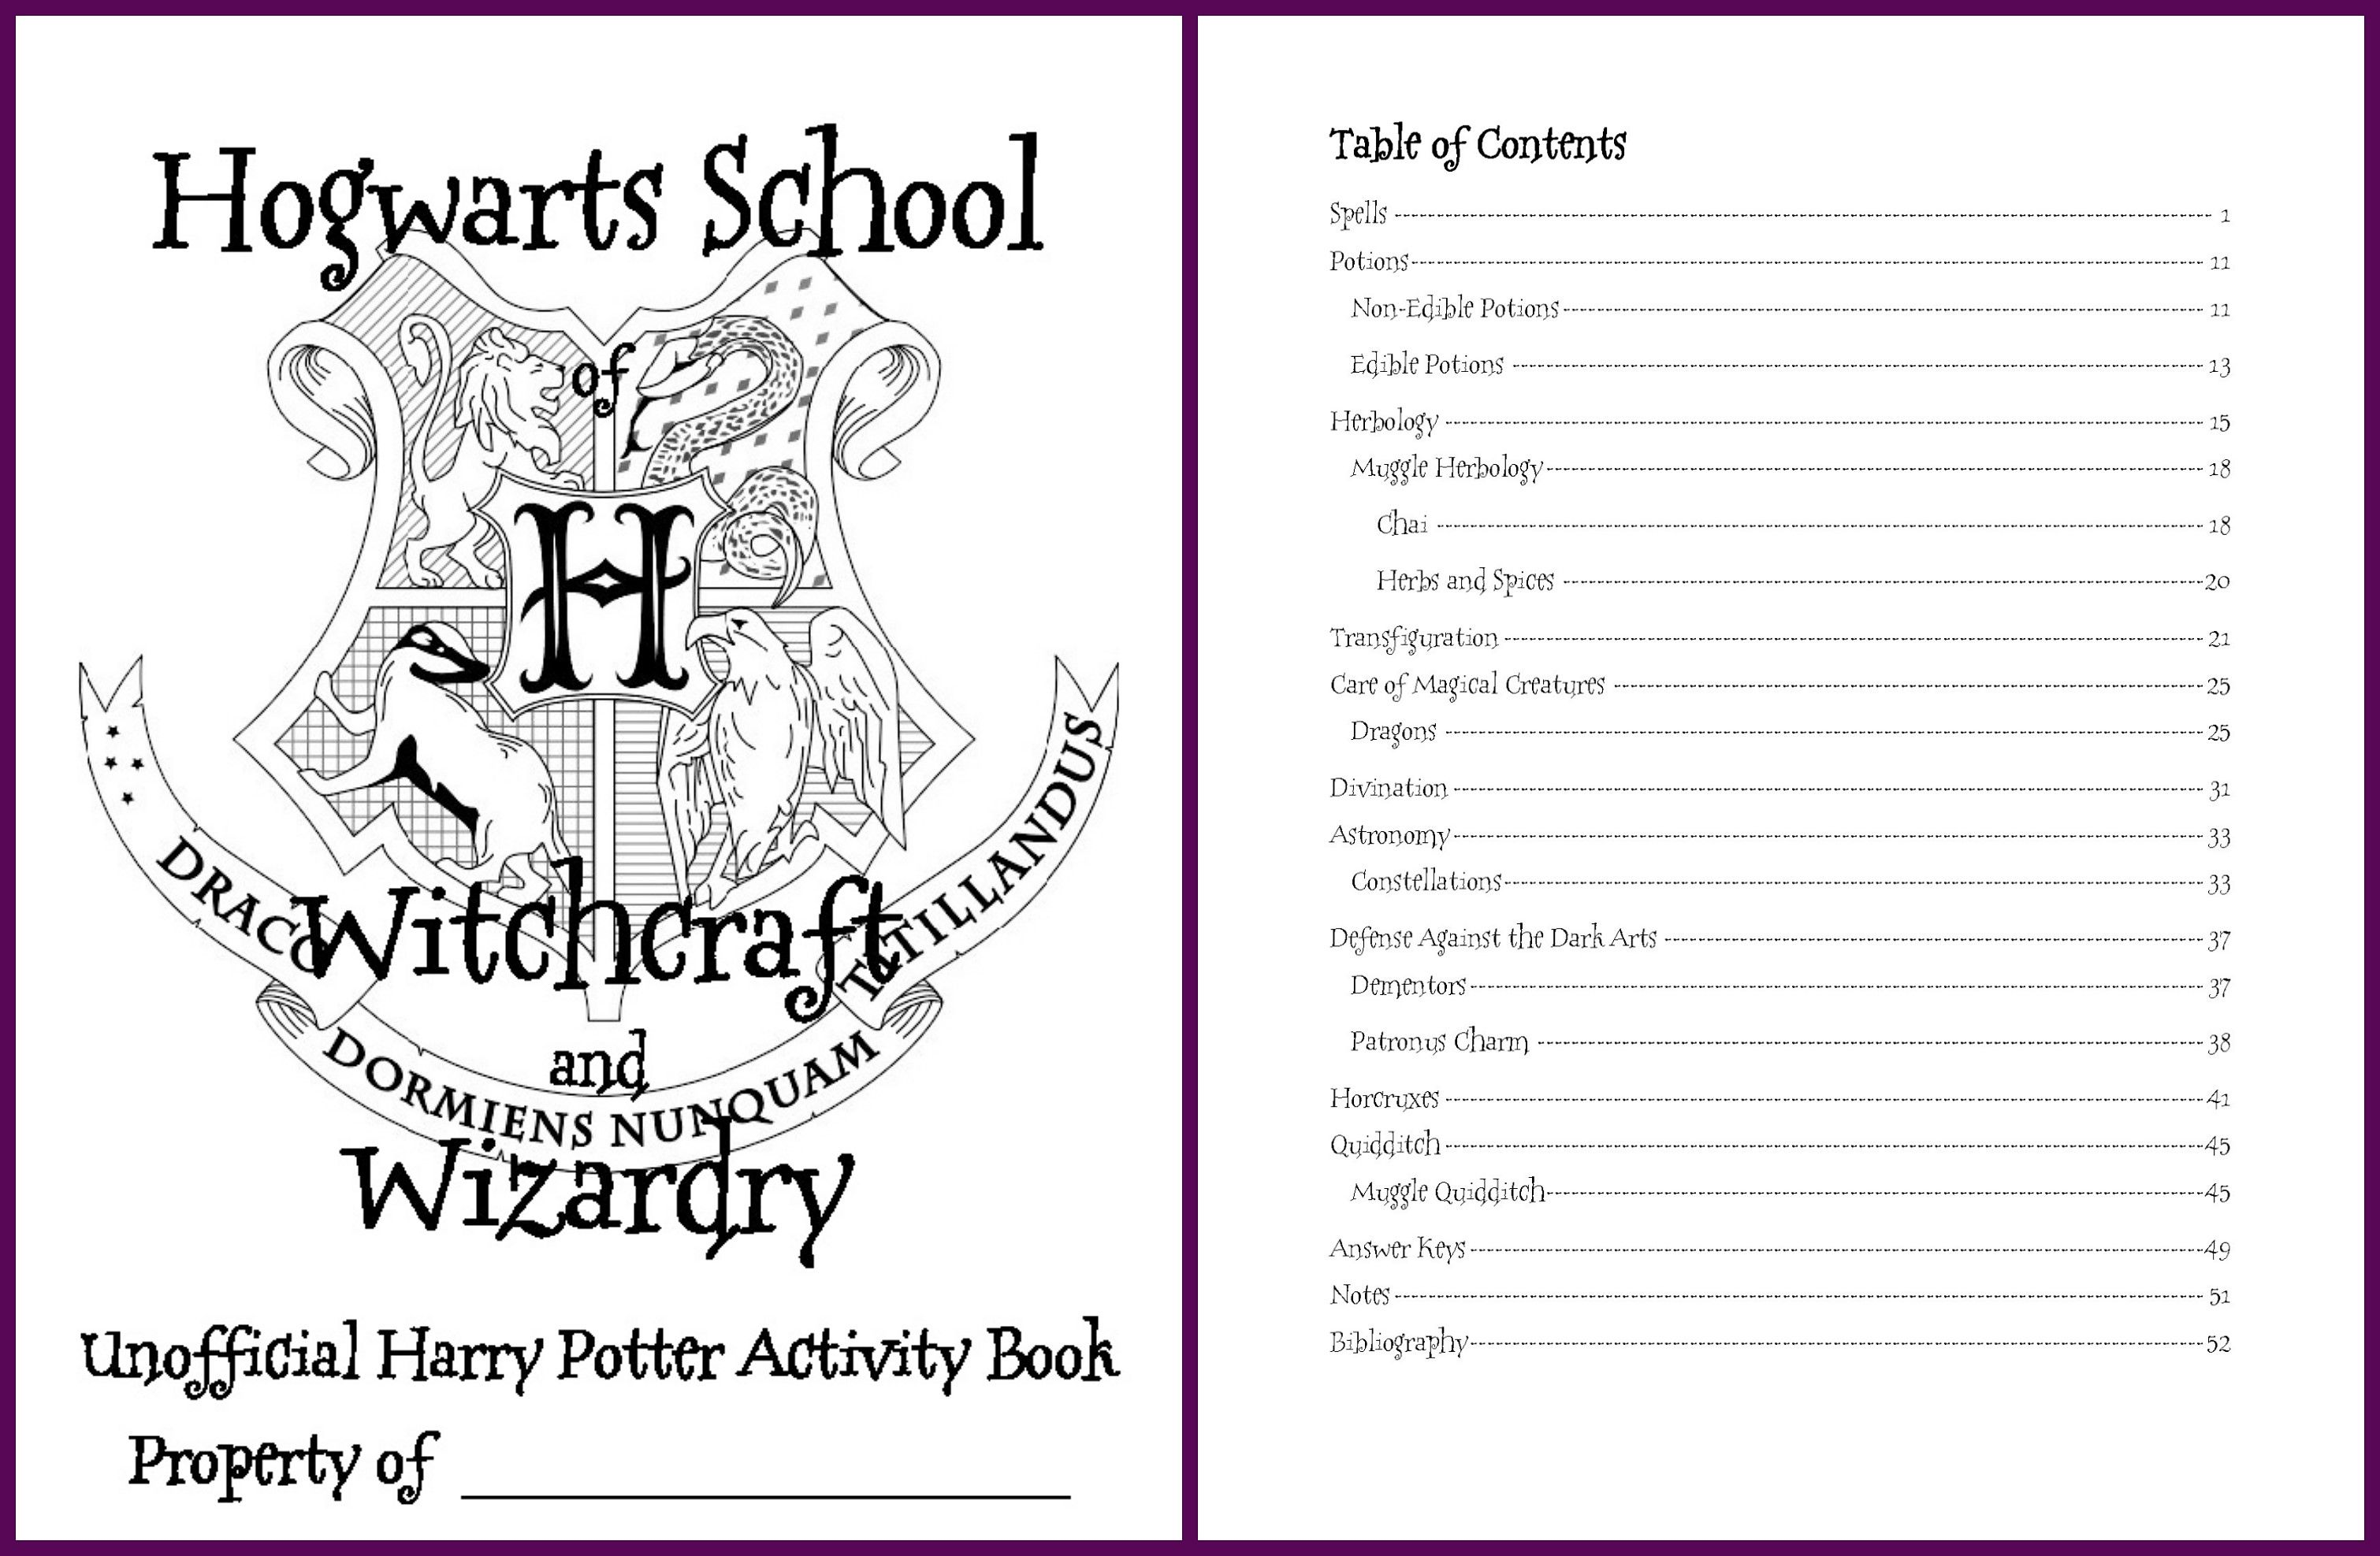 Edition 2 Large Harry Potter Inspired Hogwarts Activity Book Cover And Table Of Contents